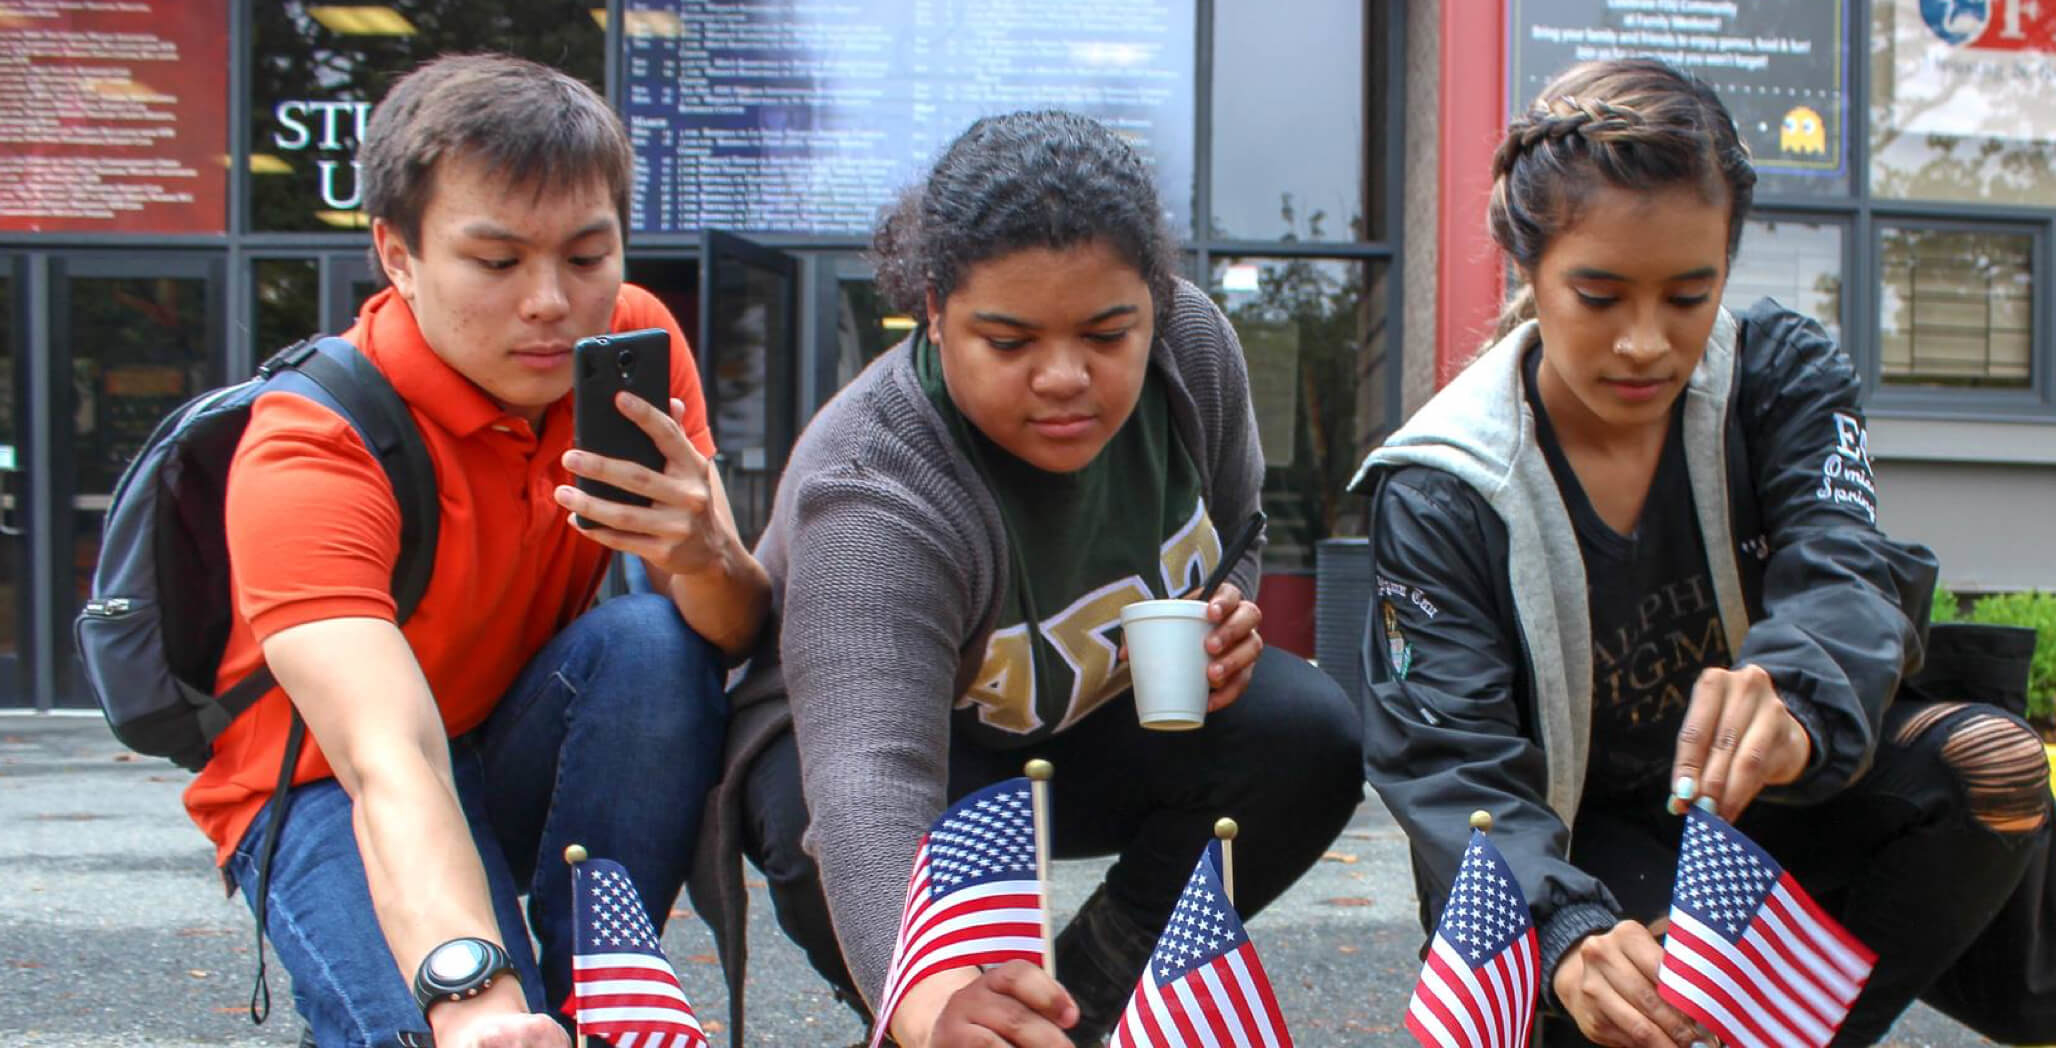 students planting American flags